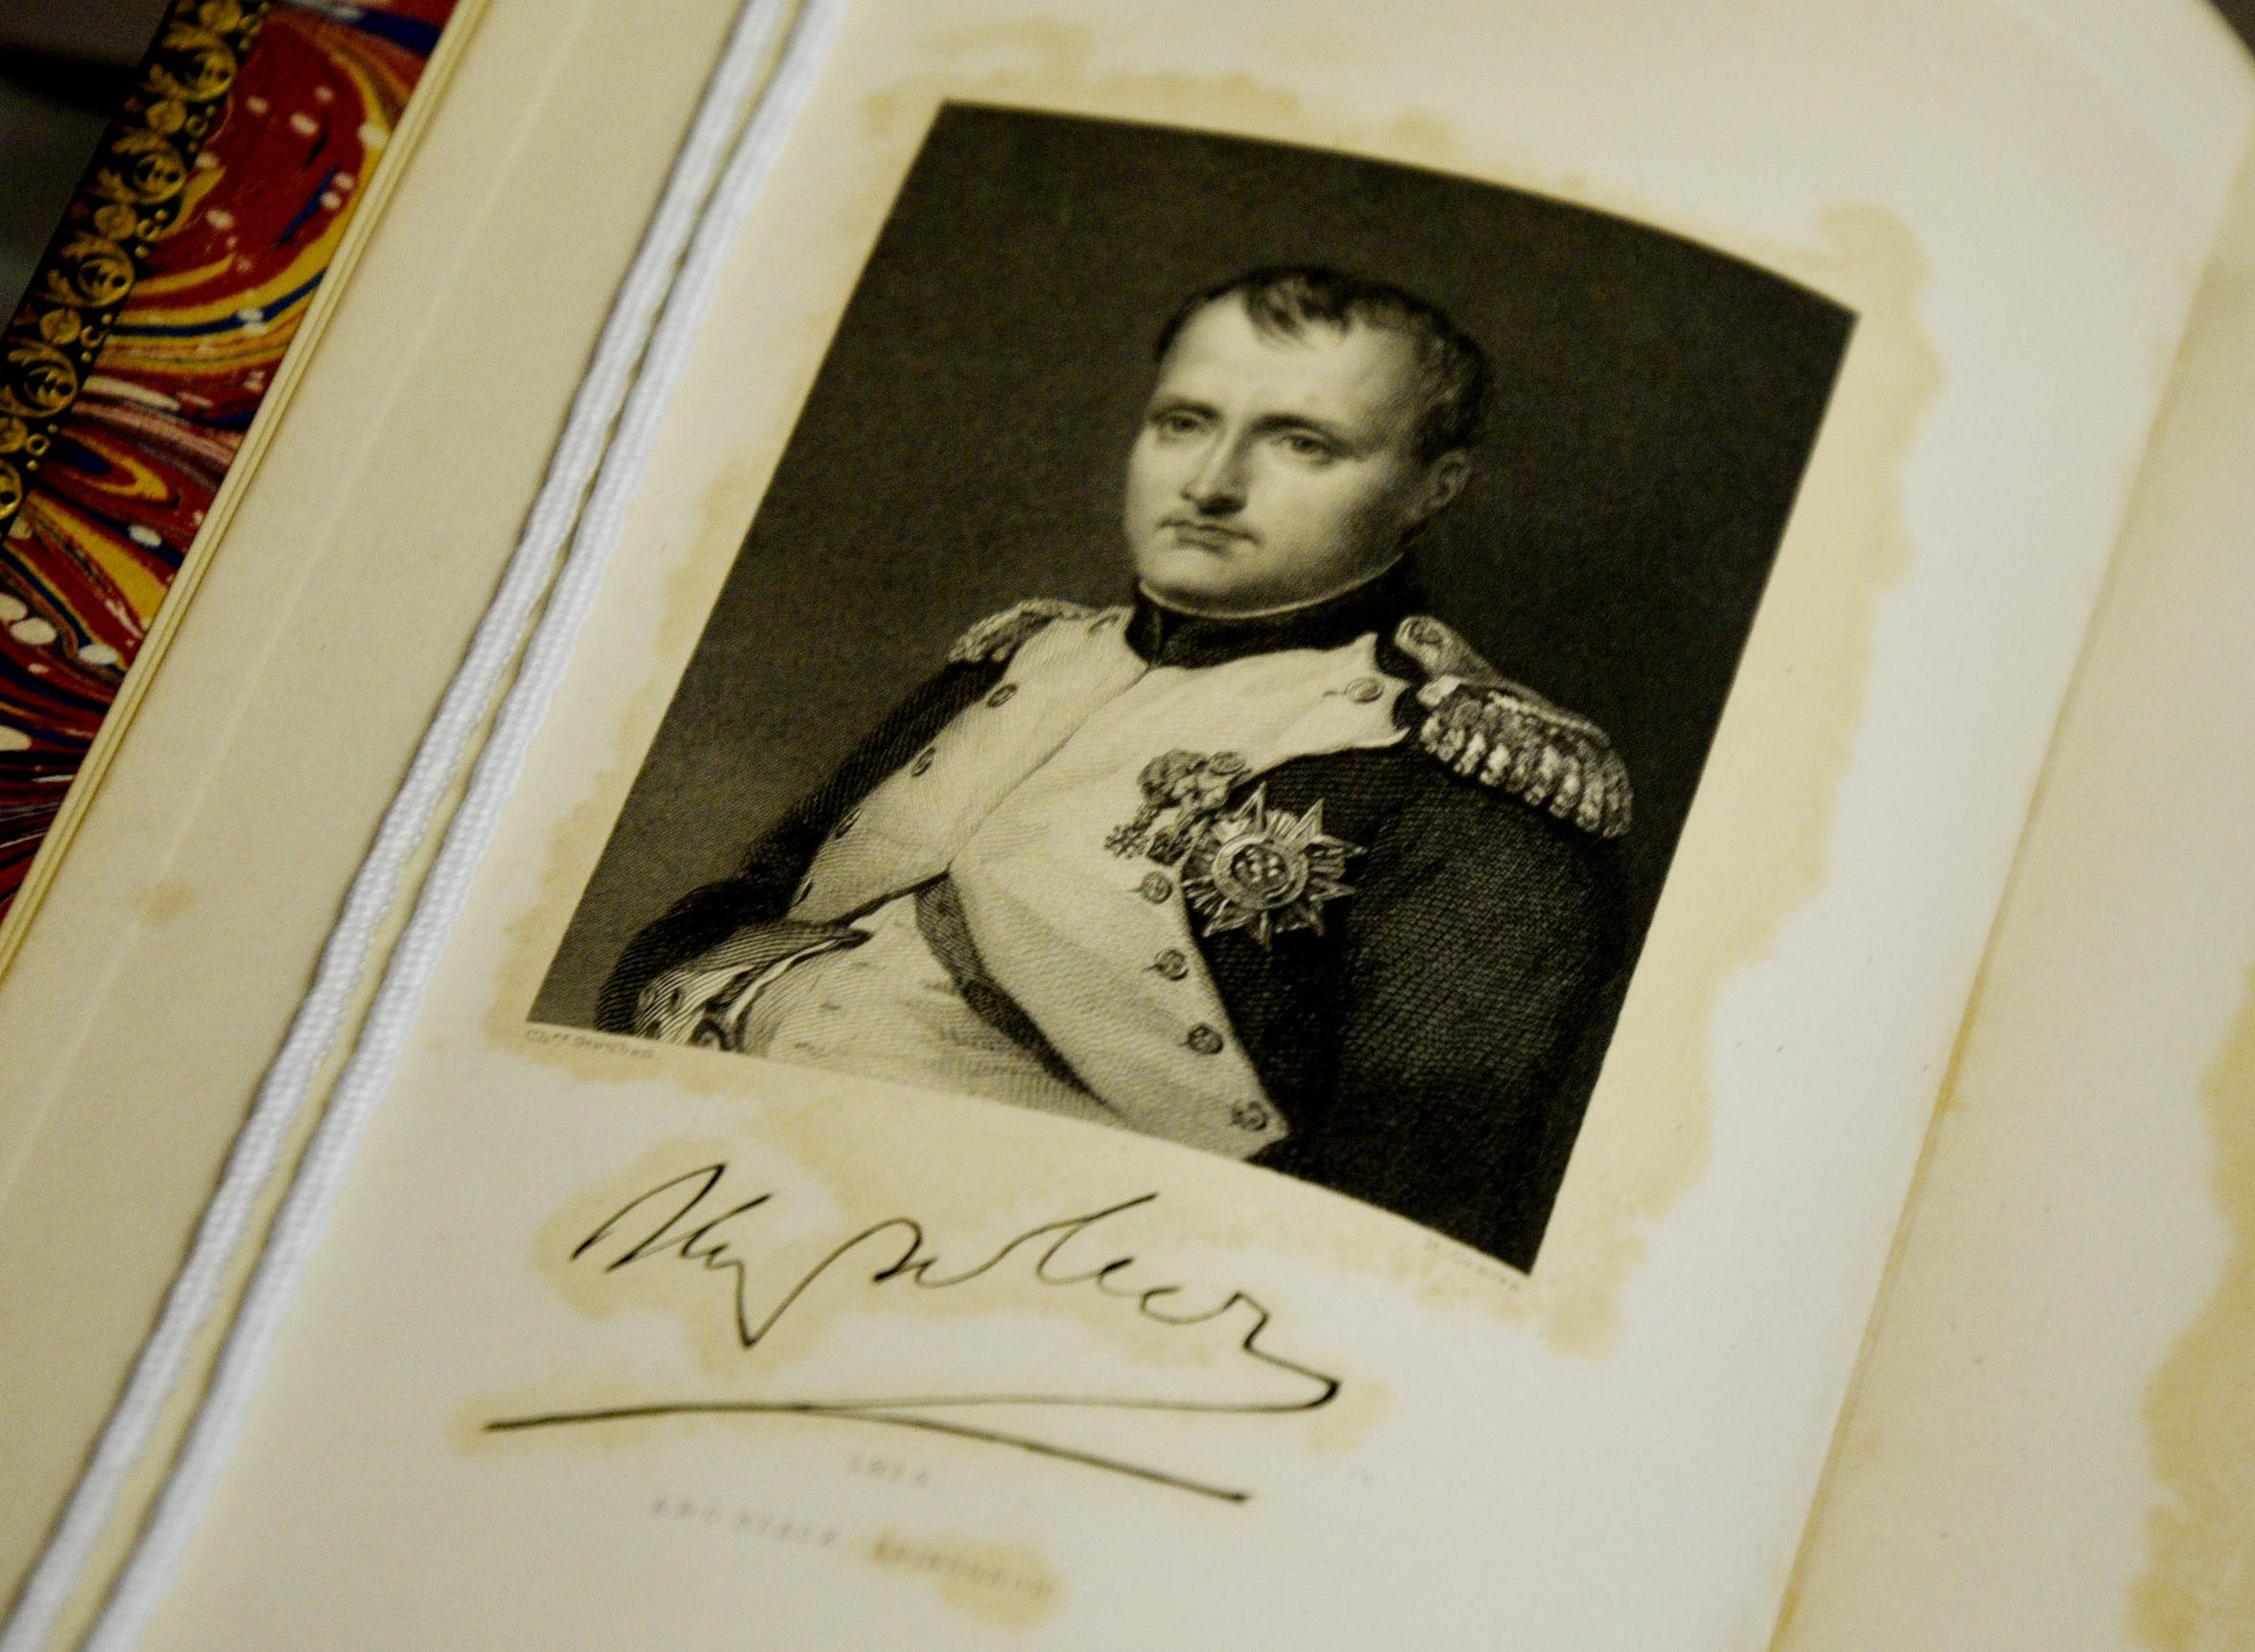 The Noel Collection's Napoleon exhibit is now at the Noel Memorial Library.